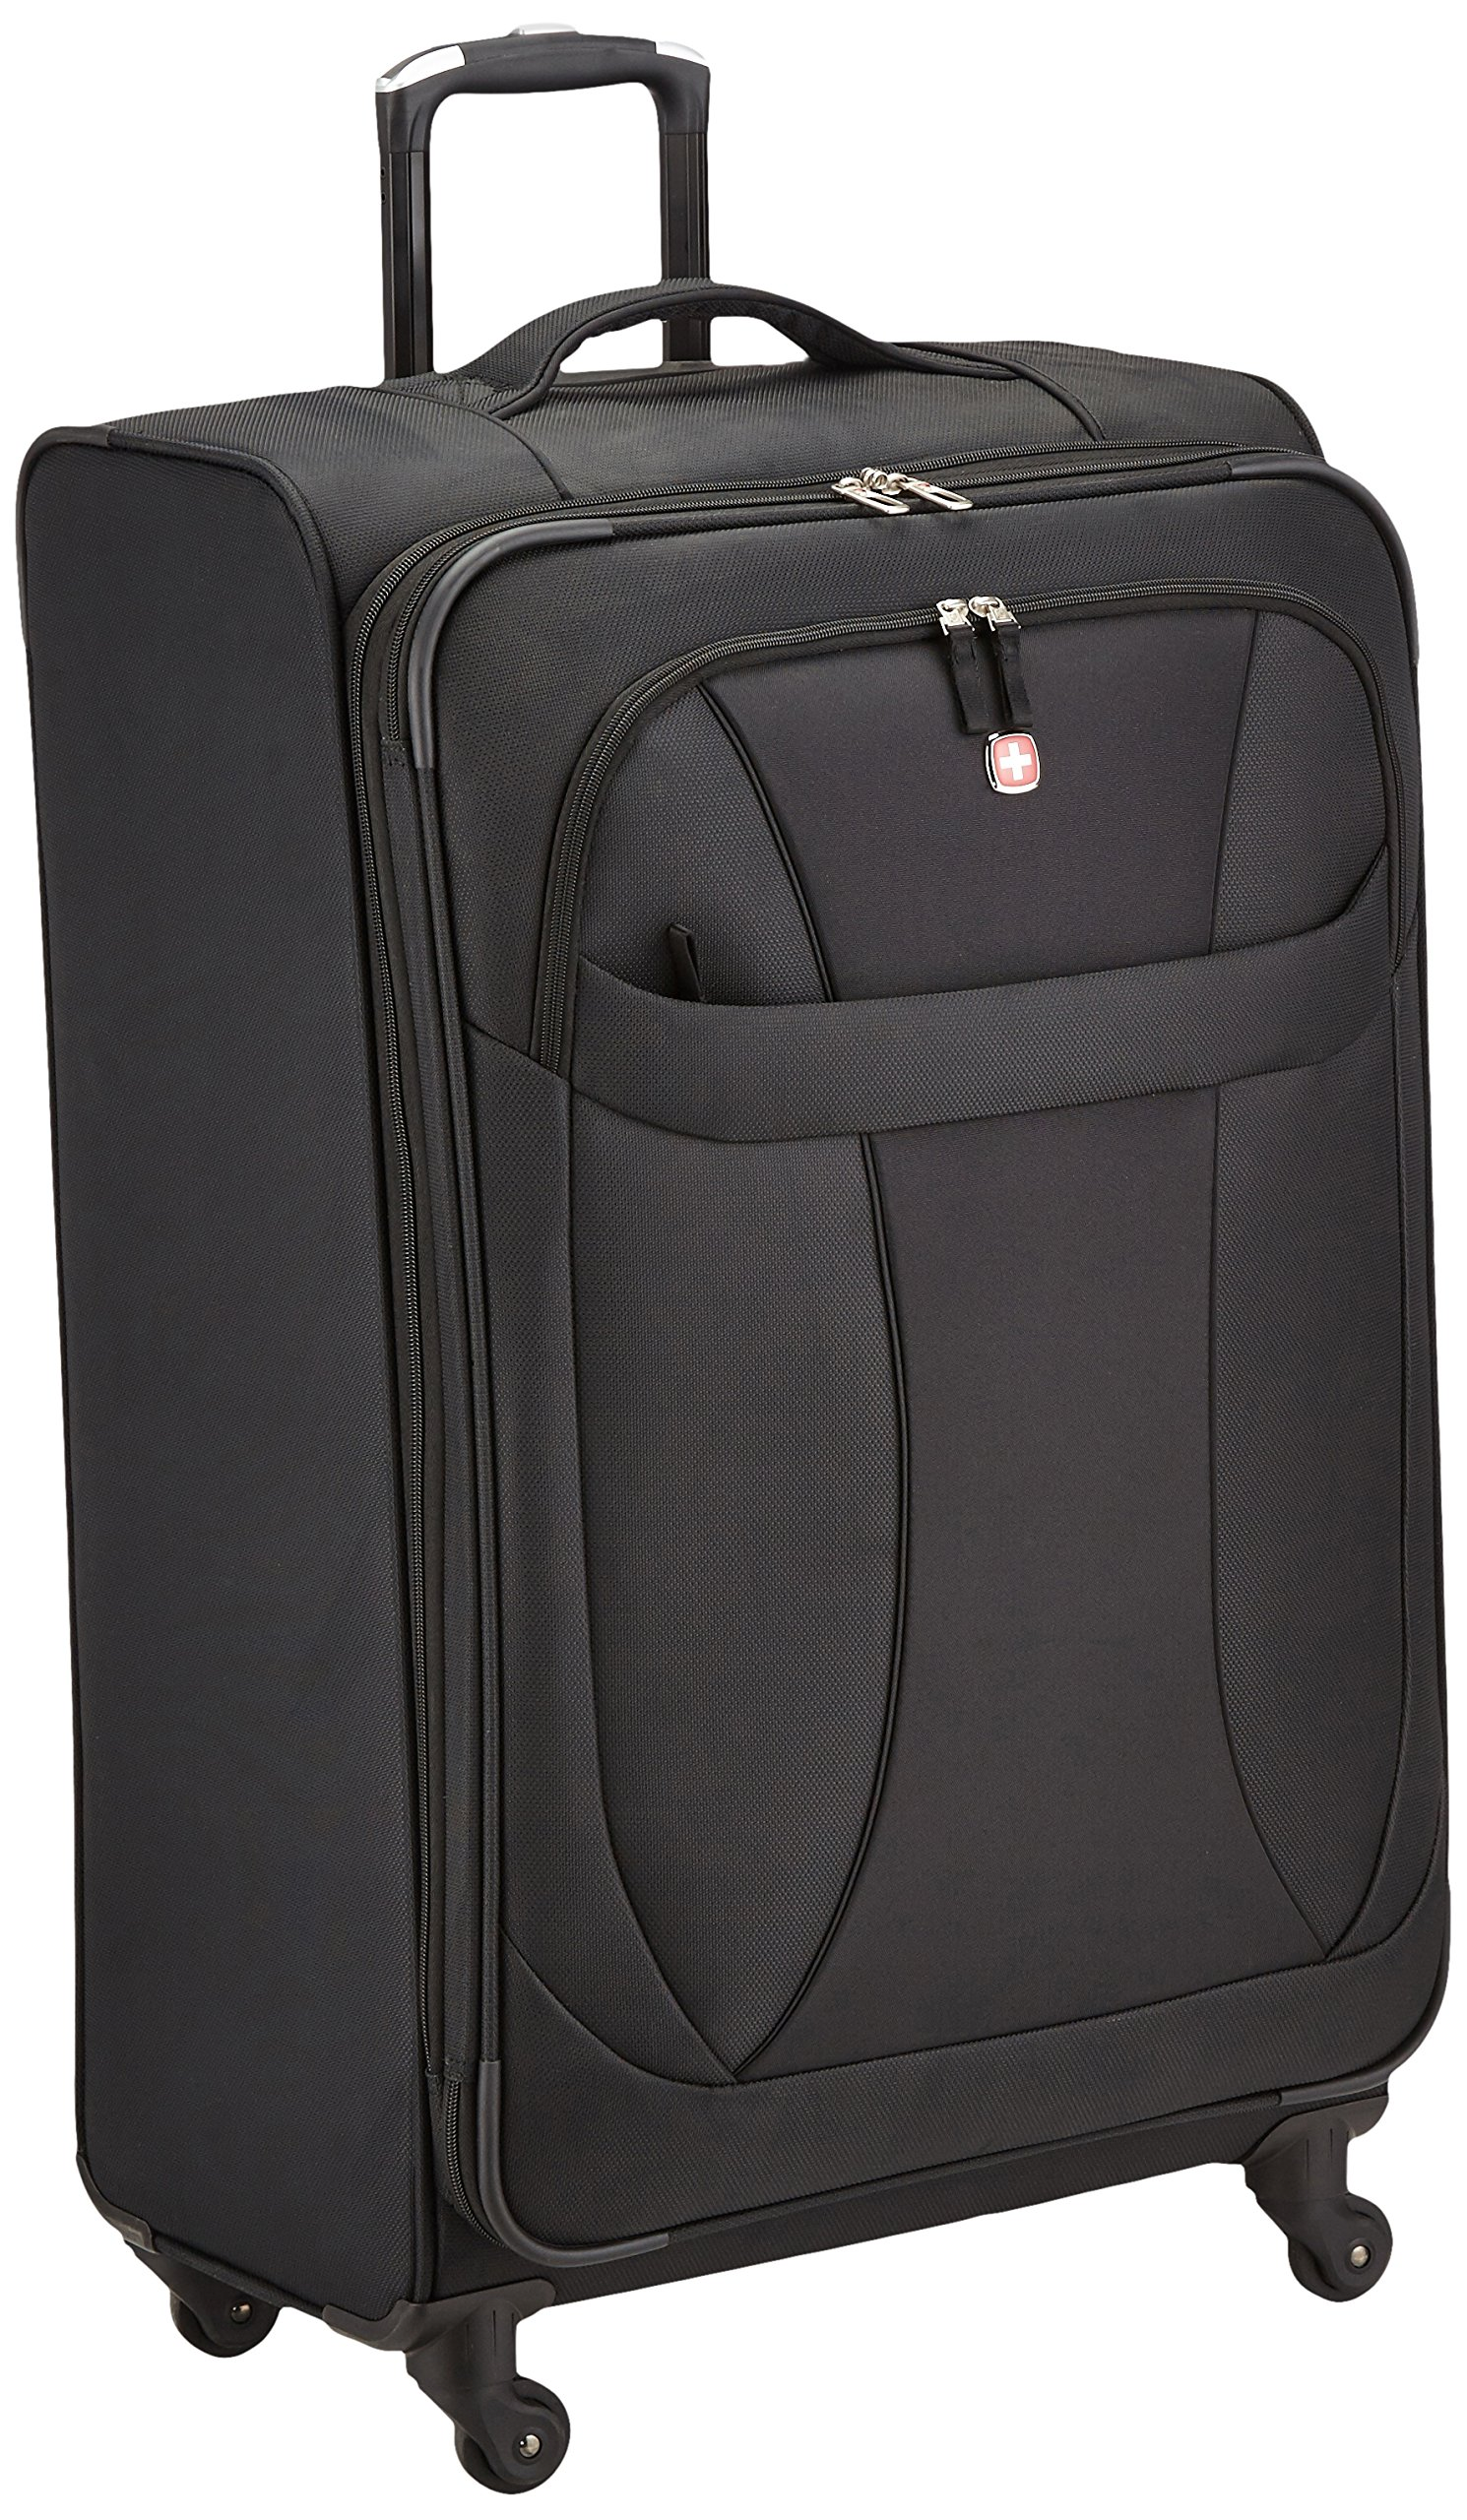 SwissGear Lightweight Spinner Luggage Collection